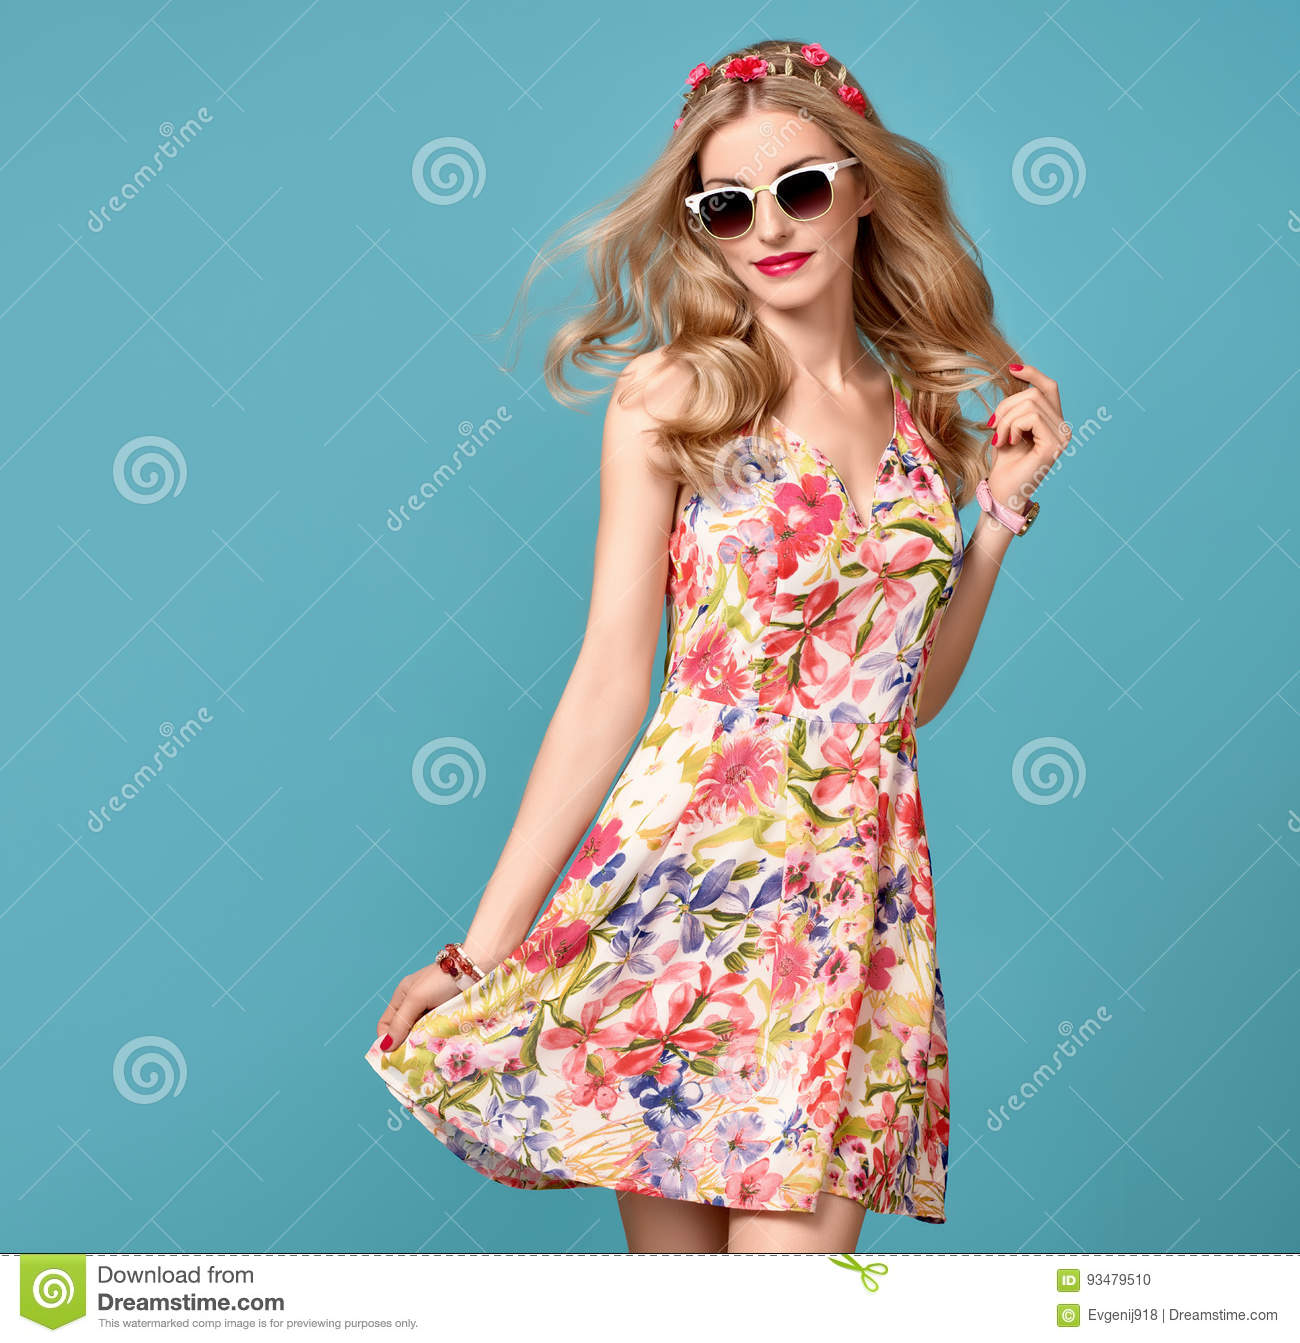 b4bd4c0695 Fashion Beauty. Sensual Blond Model in fashion pose Smiling. Woman in Summer  Outfit. Trendy Floral Dress